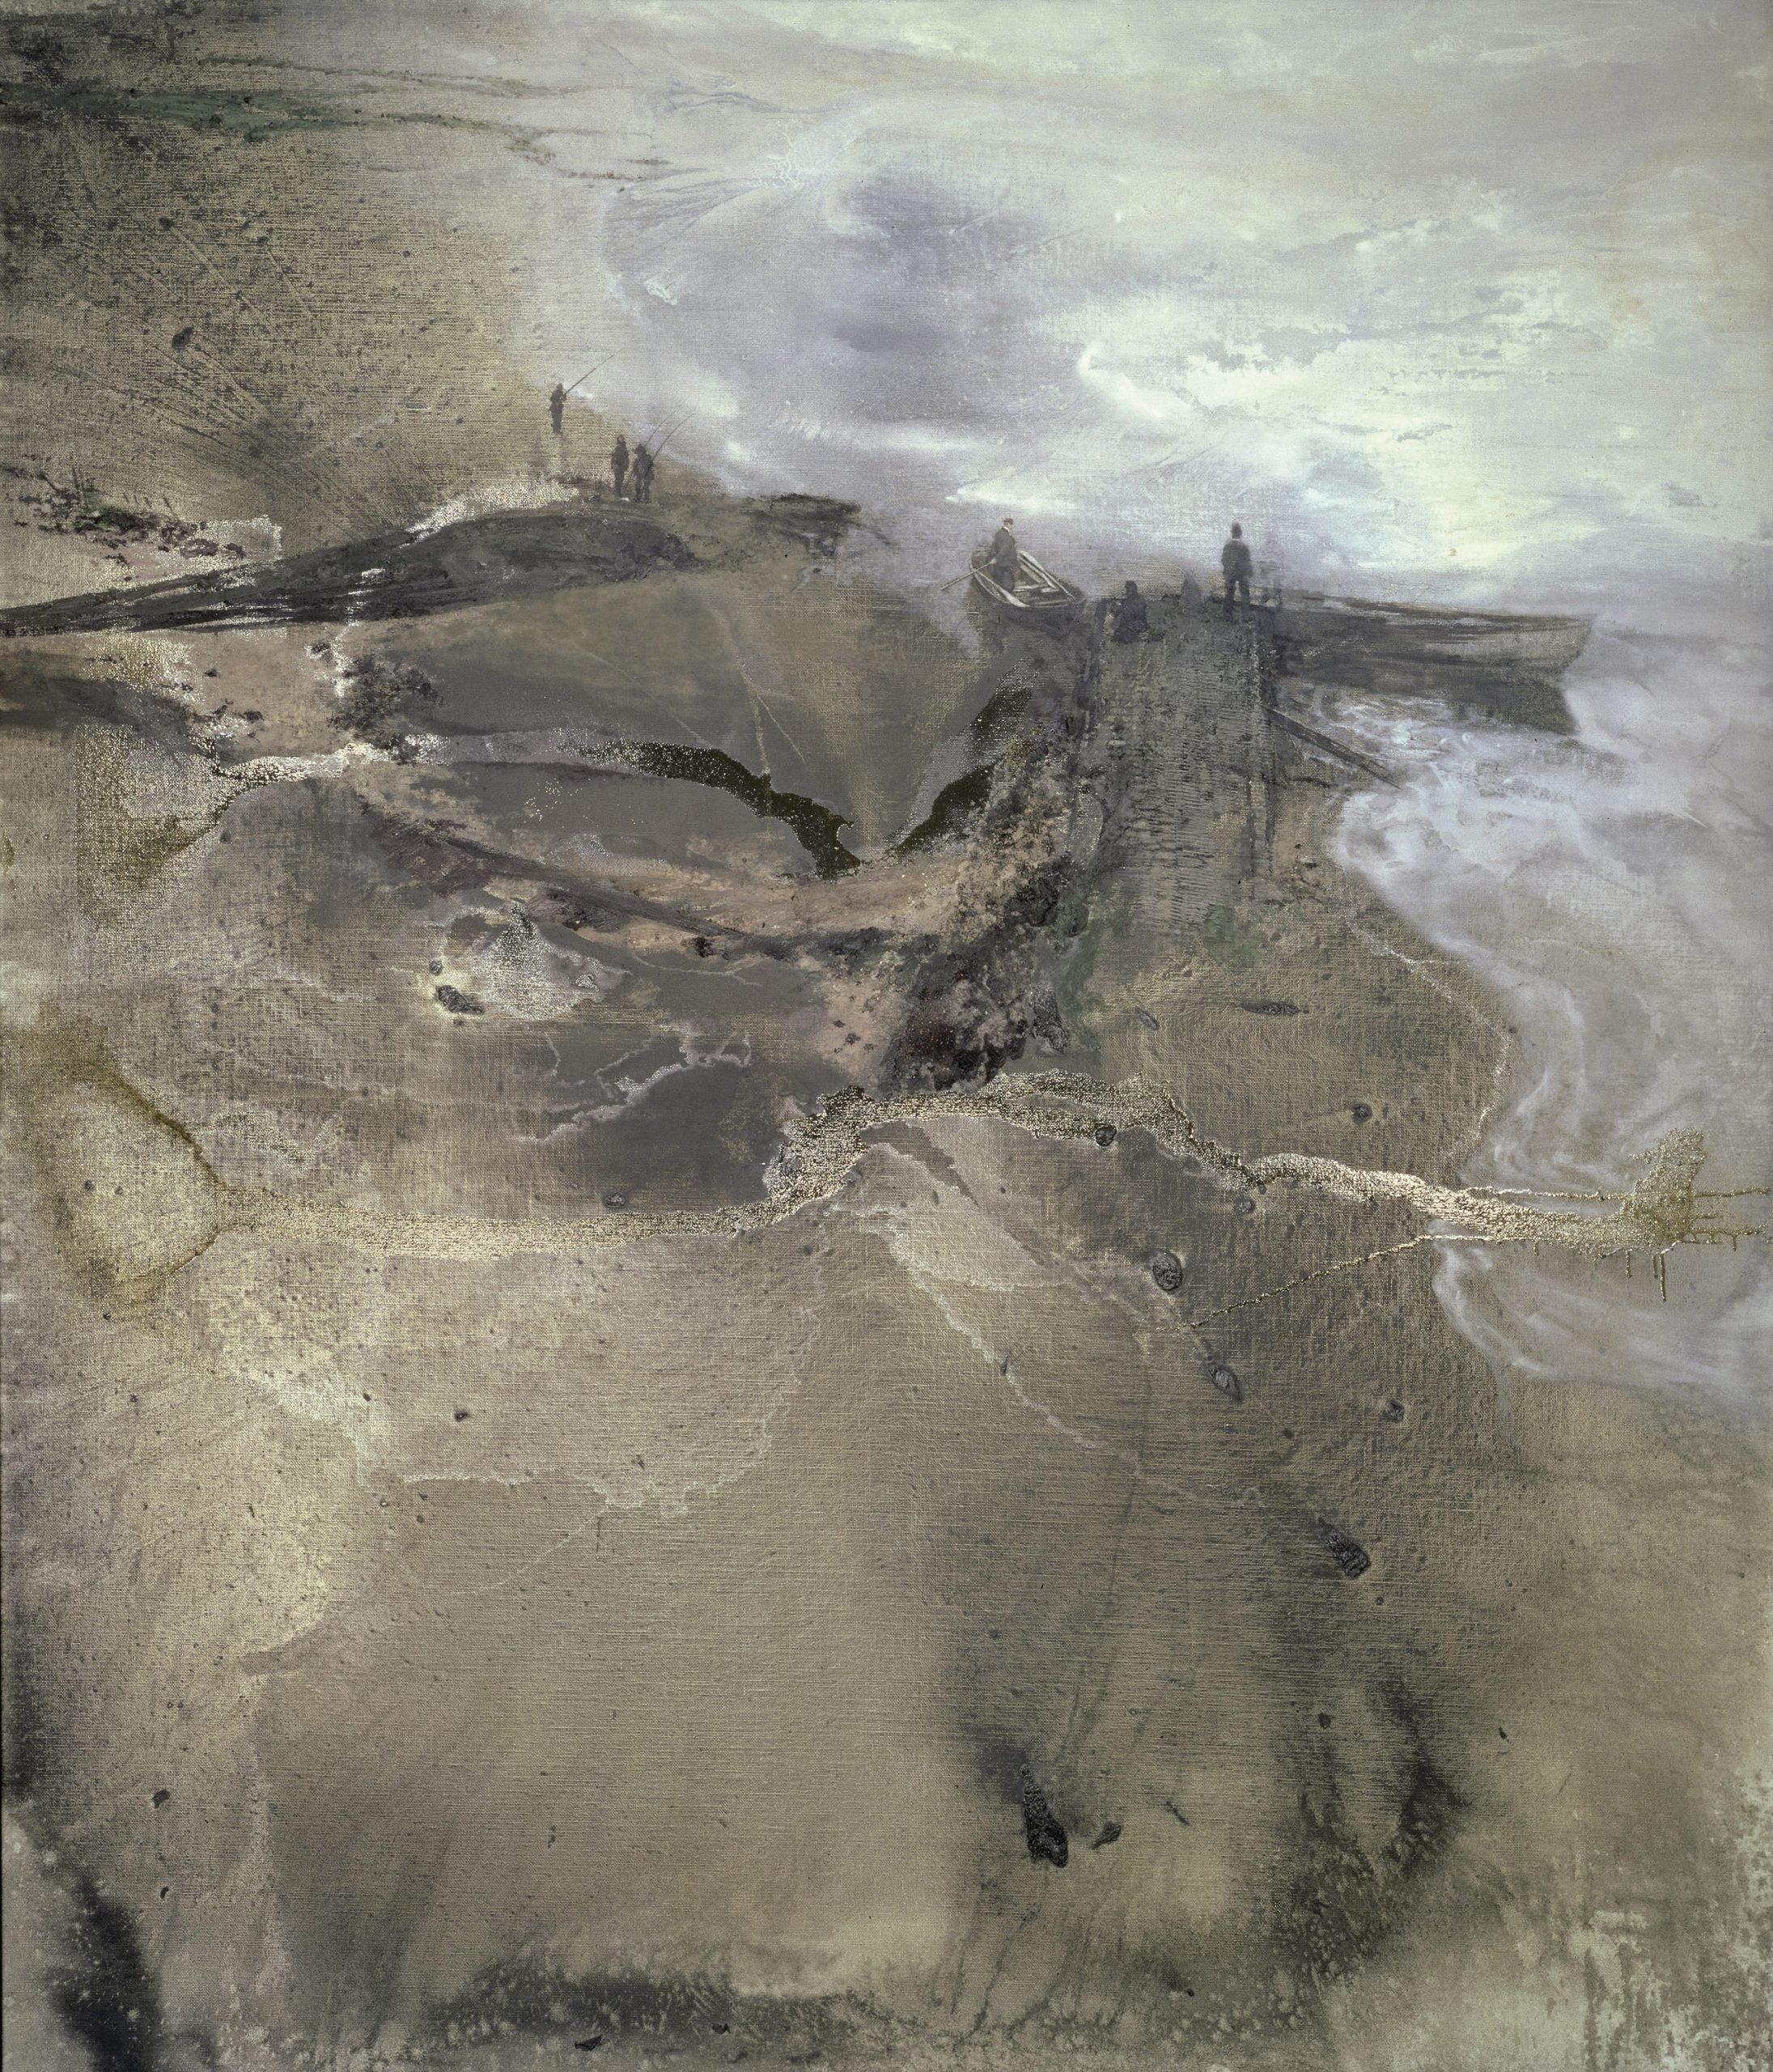 The greats outdoors: Michael Andrews' valedictory Thames paintings